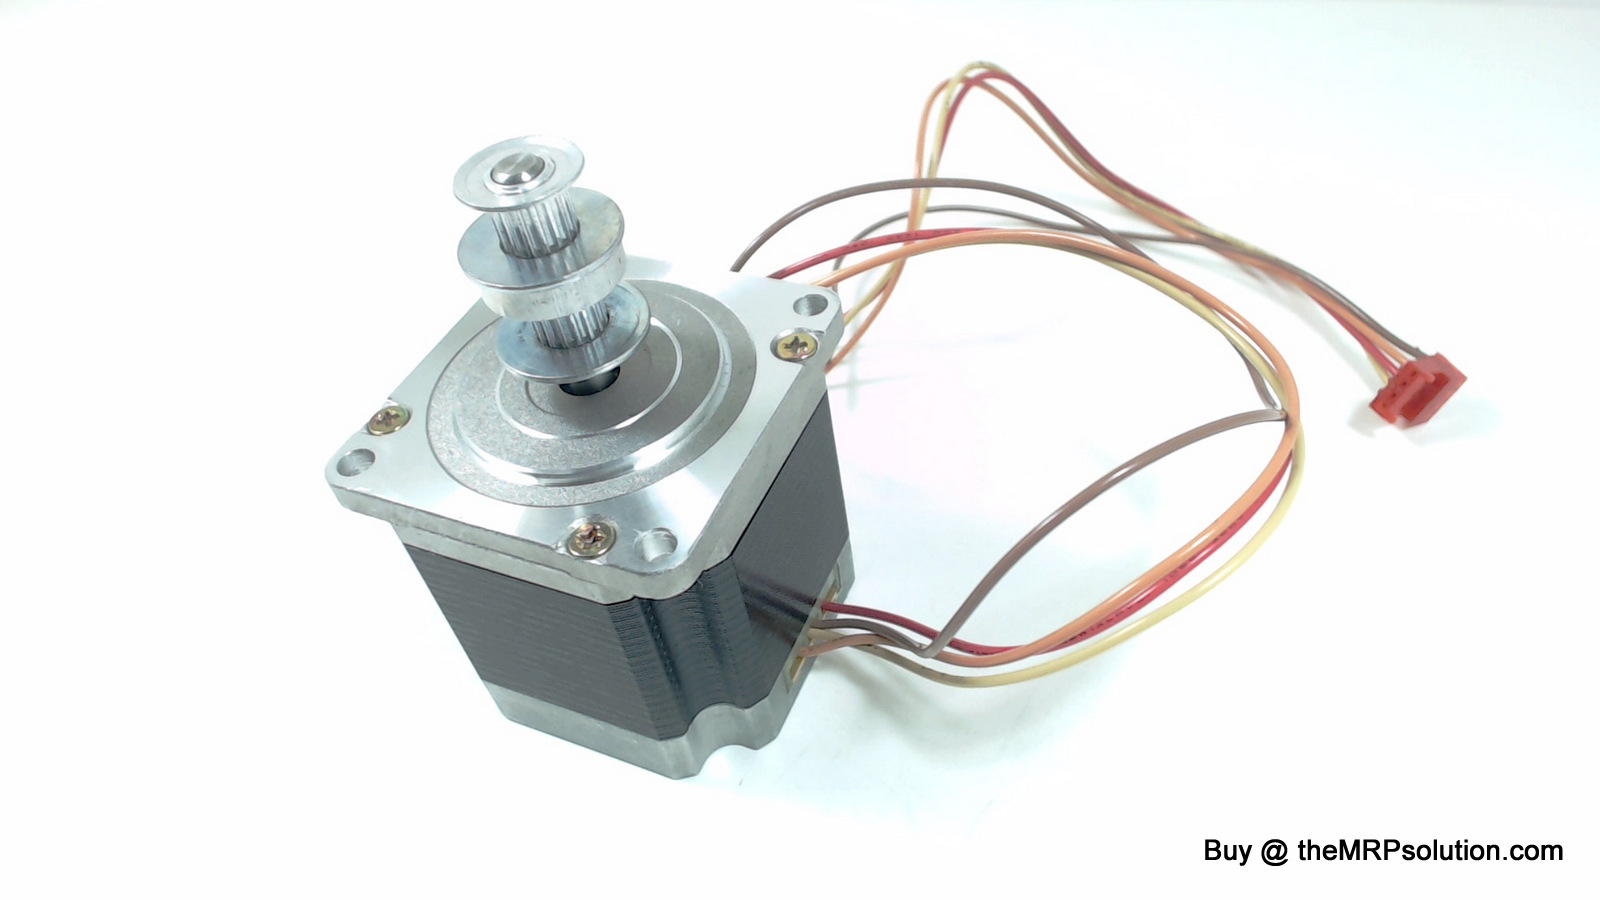 ZEBRA 43420 STEPPER MOTOR, 600DPI Refurbished